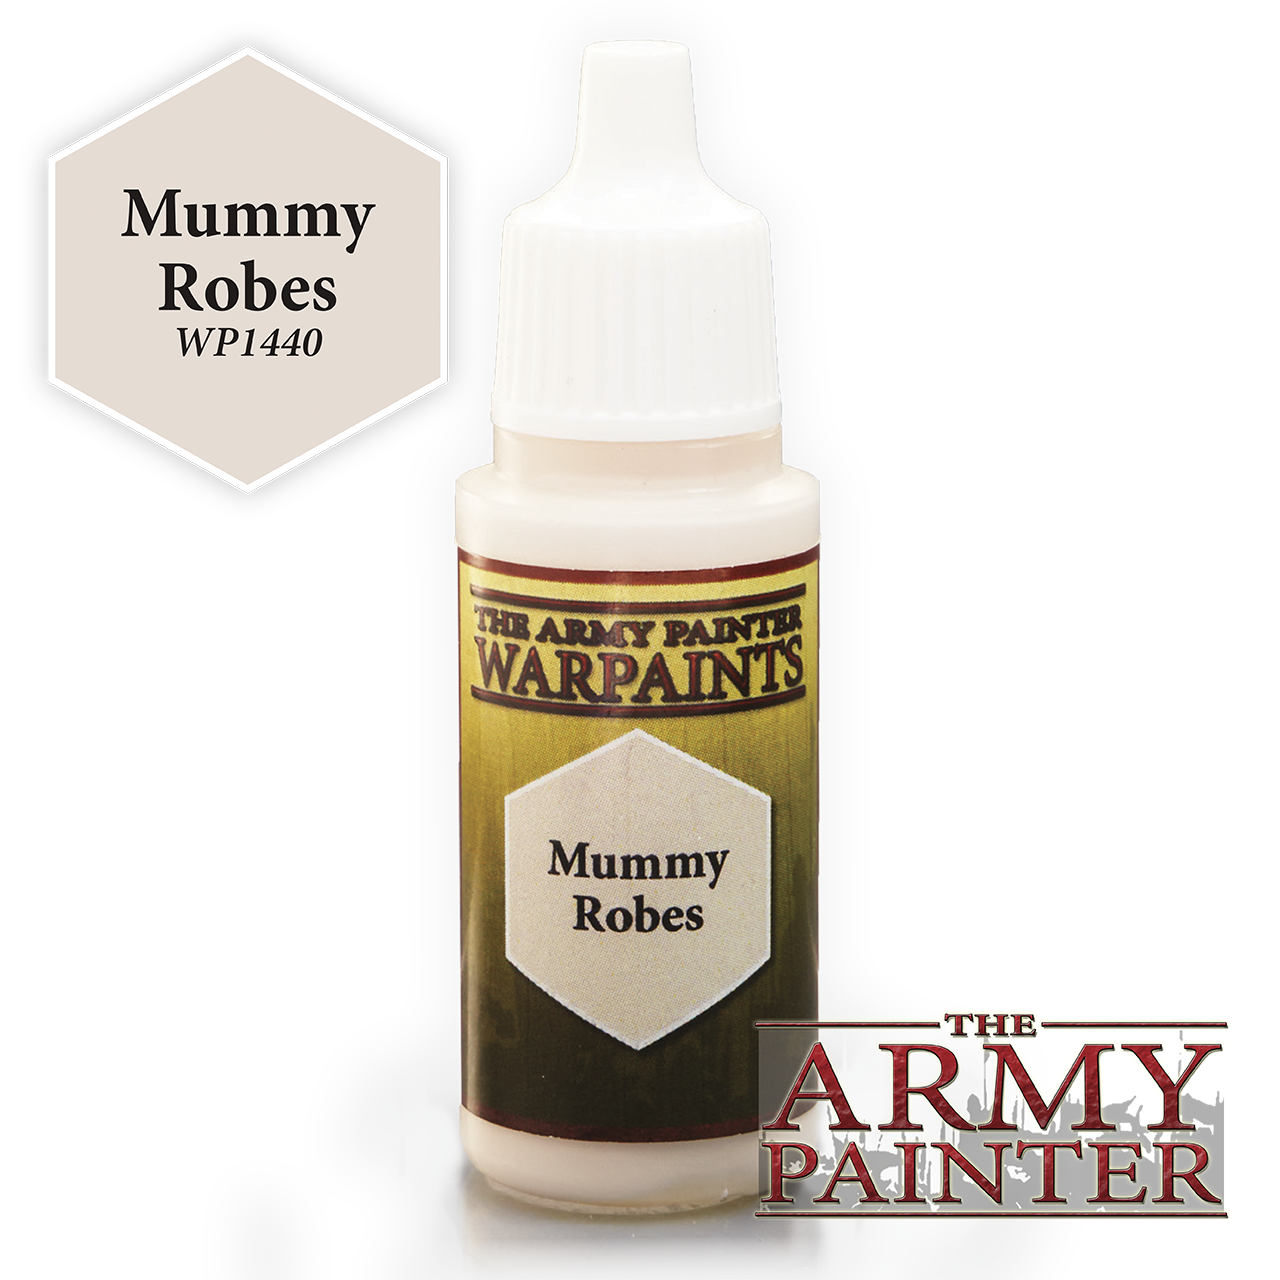 The Army Painter Warpaints: Mummy Robes (18ml)